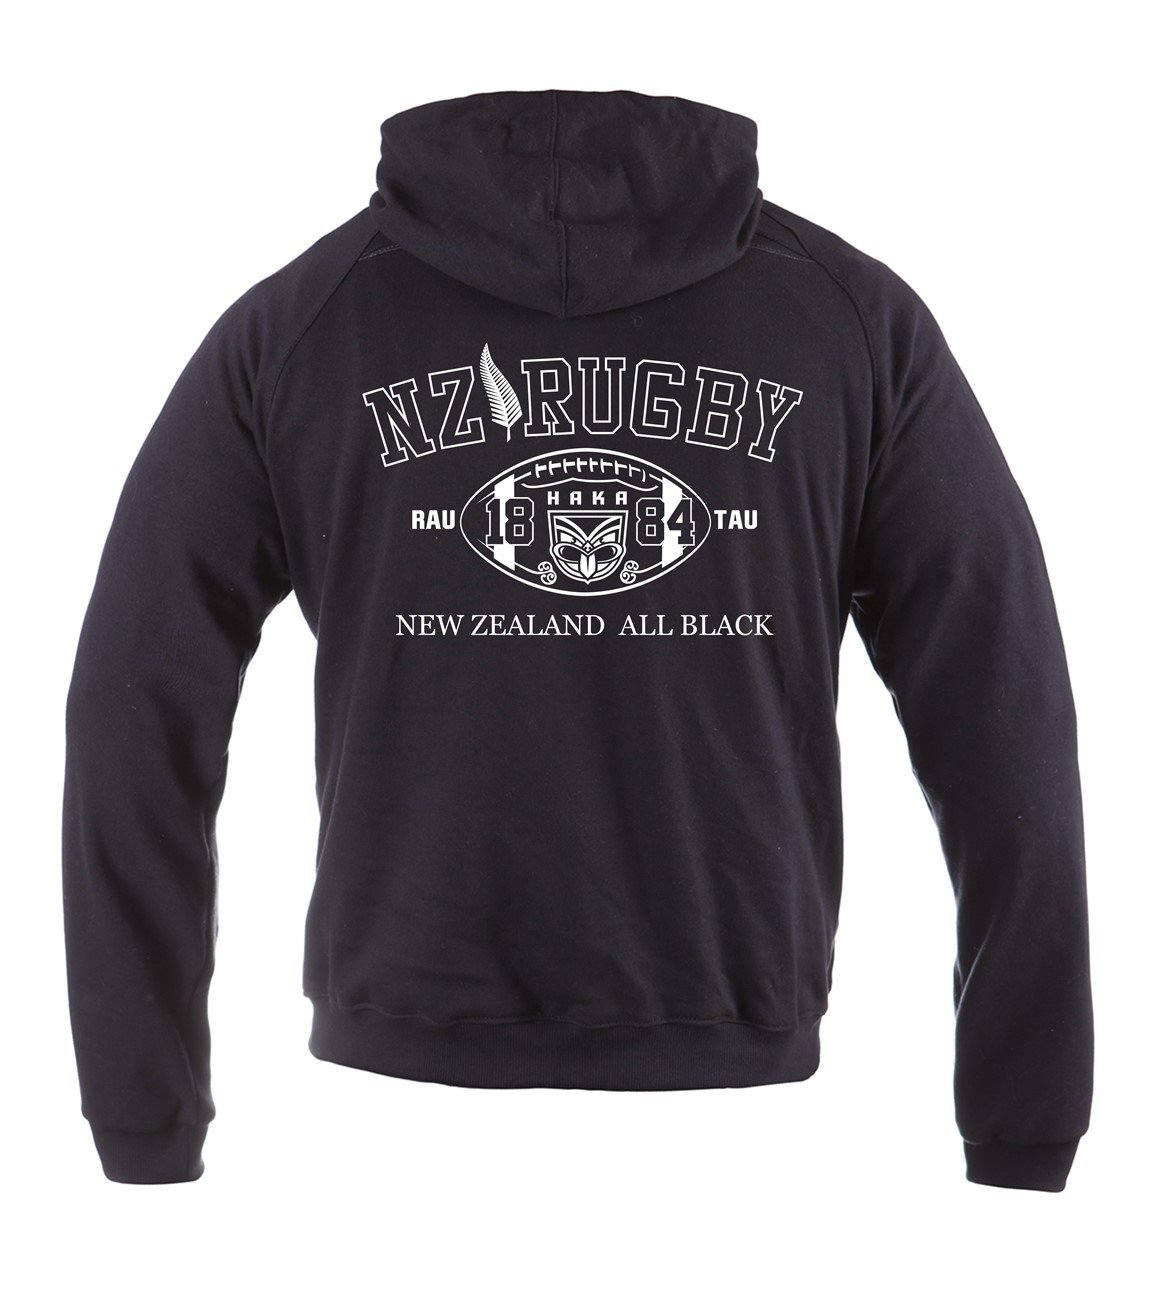 Dirty Ray Rugby New Zealand All Black sudadera hombre verano temporada media con capucha BL2 Model: BL2